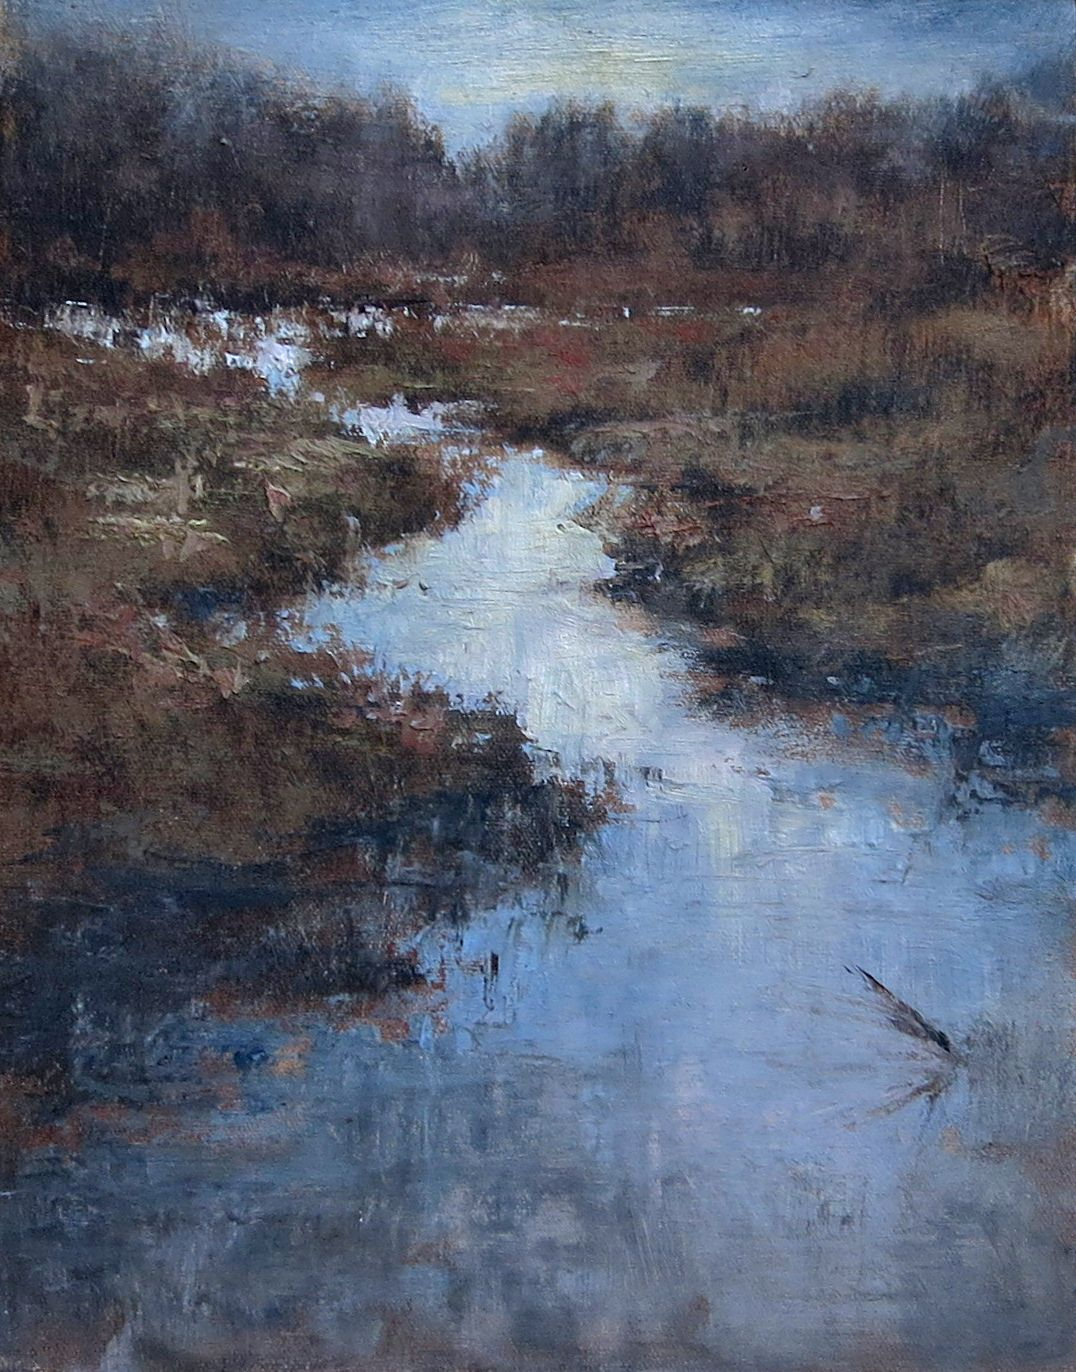 Plein Air Painting of the wetlands near my home. I painted